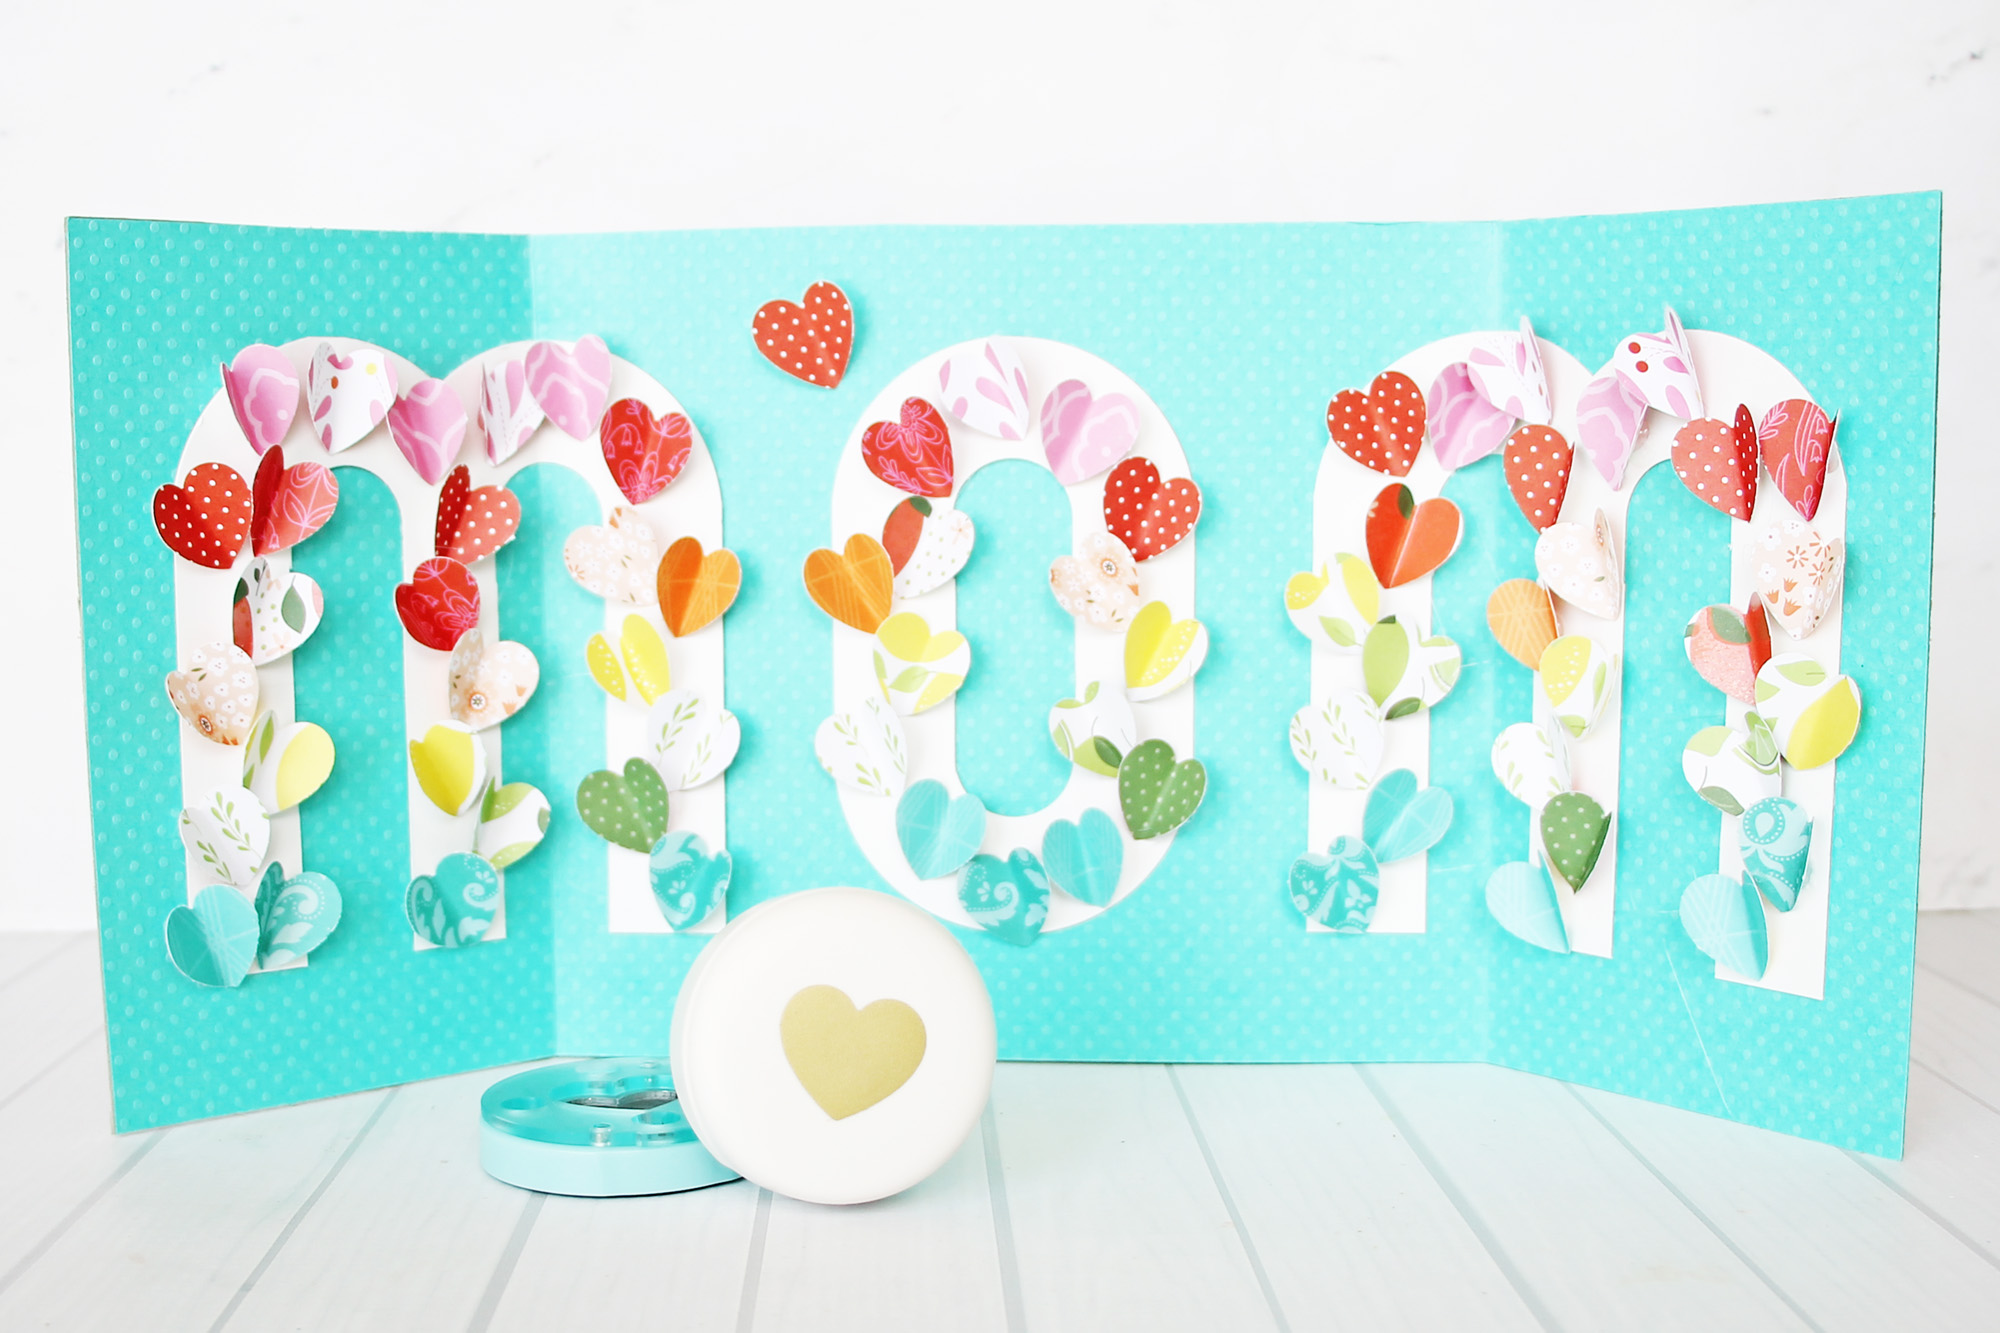 Mother's Day Heart Art Gift Idea by Laura Silva for We R Memory Keepers